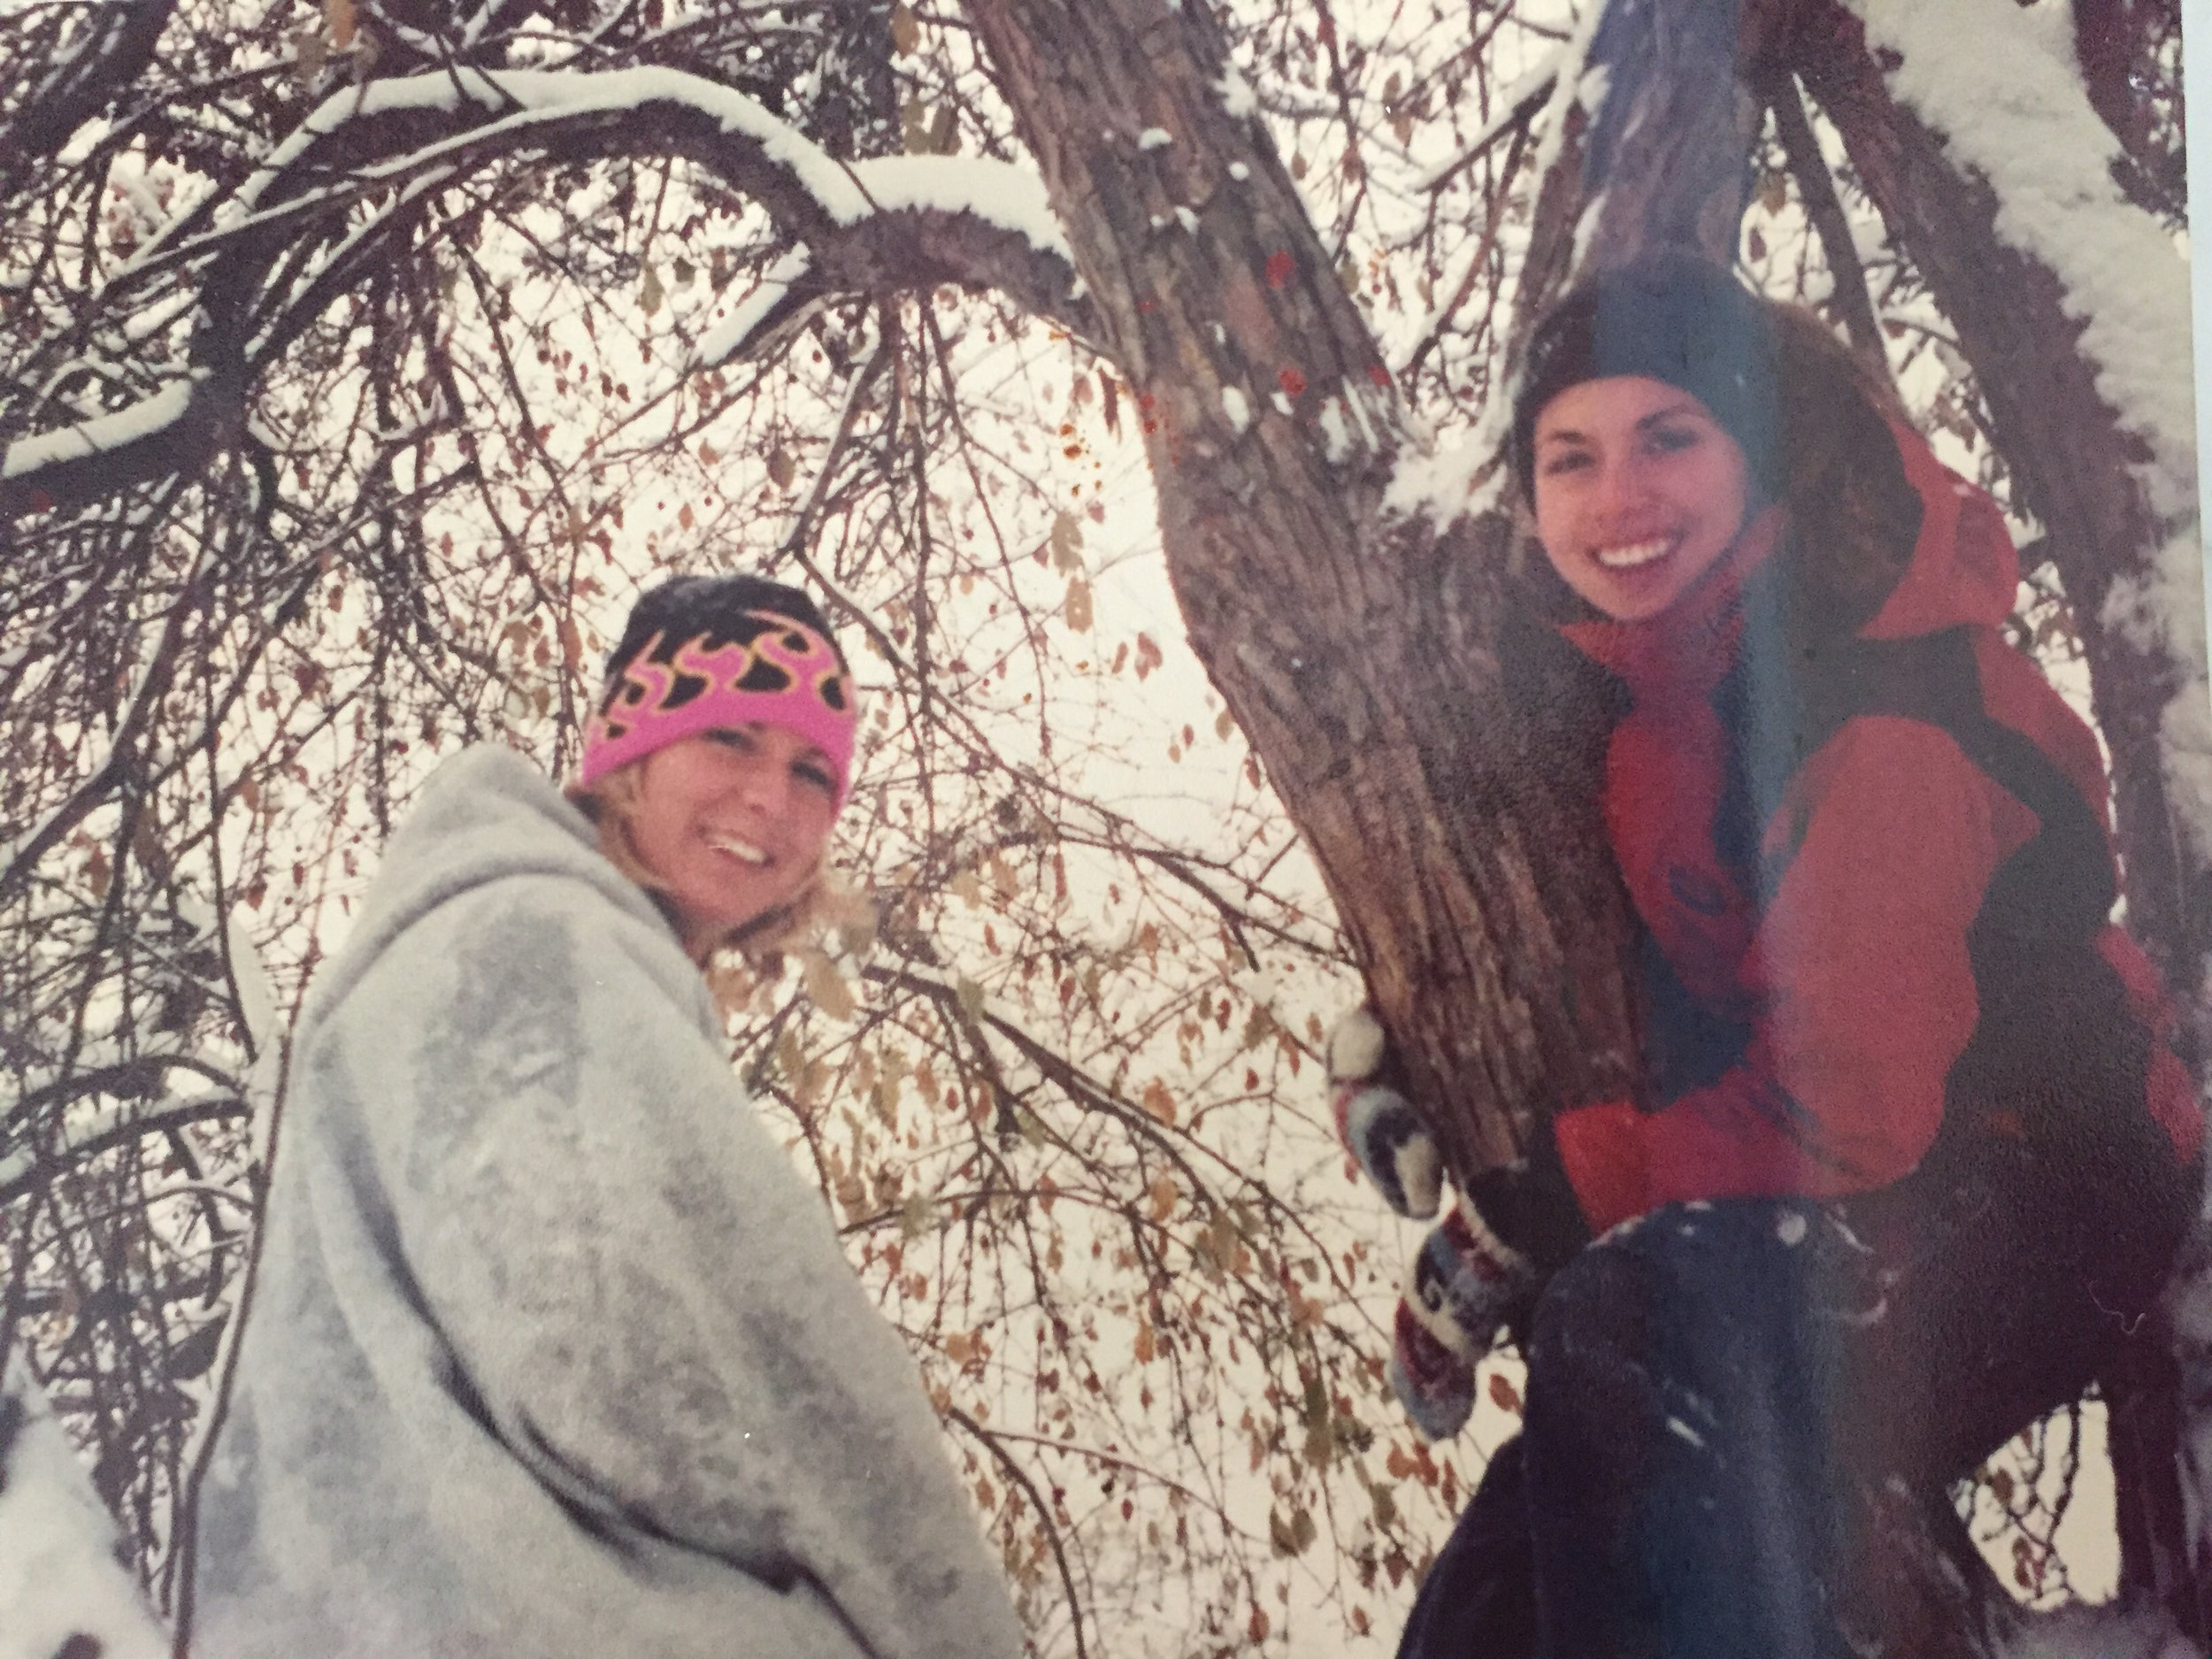 Jen and I adventuring on a snow day in Colorado. I think it is the year 2000, so that's 16 years ago. No way!